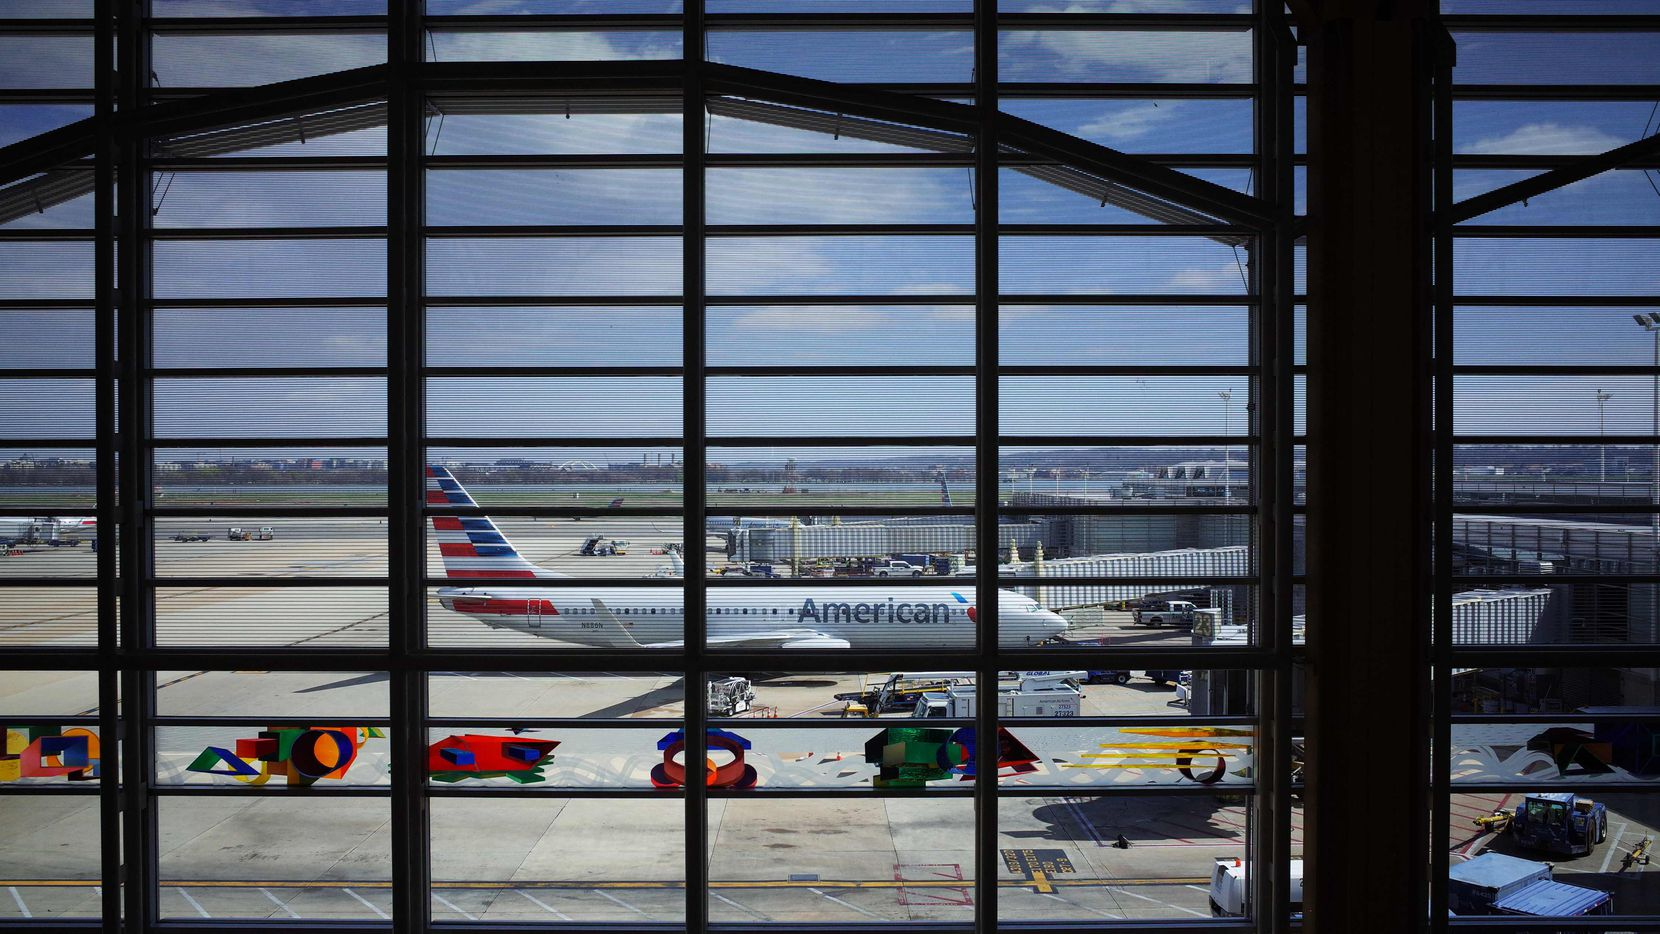 (FILES) In this file photo taken on March 17, 2020 an American Airlines plane is seen from a terminal of Reagan National Airport in Arlington, Virginia.